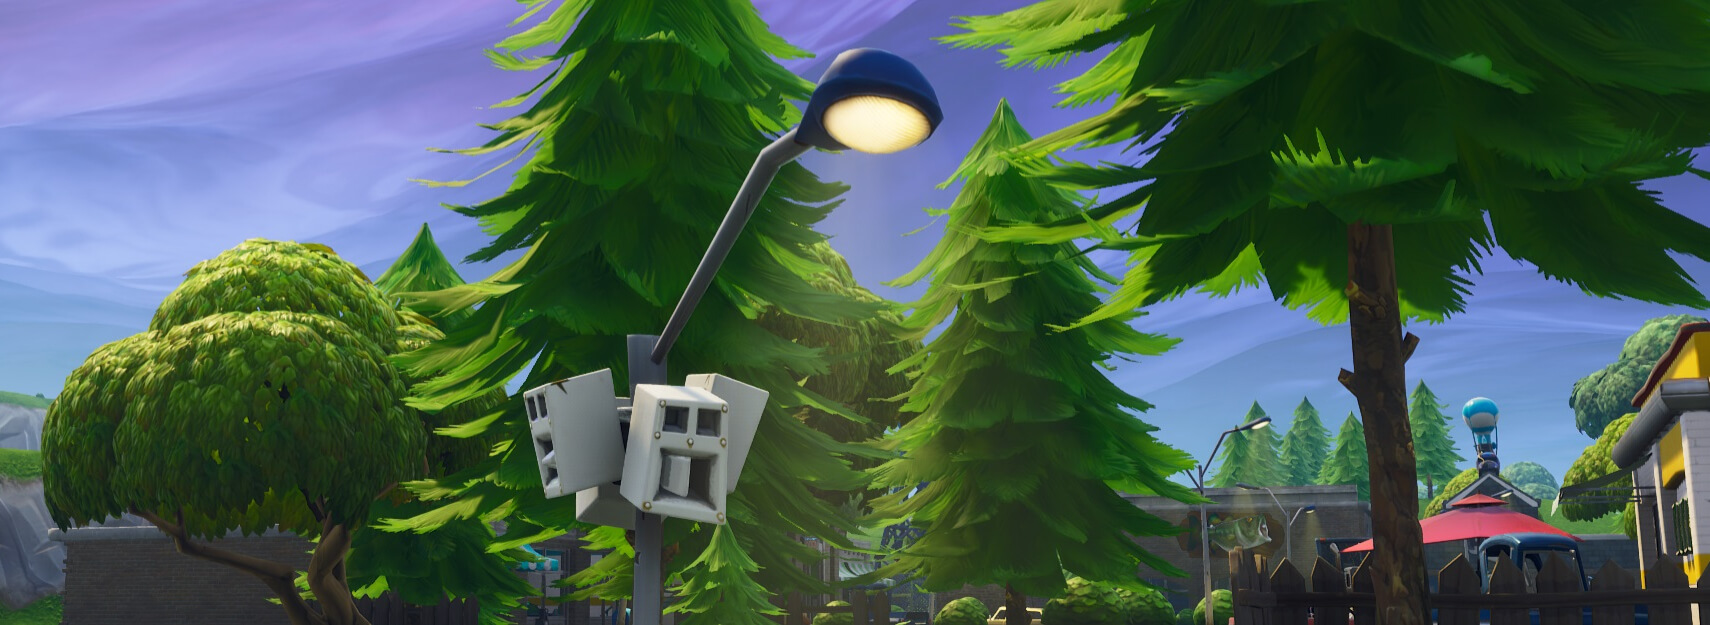 Power company asks Epic to remove utility poles from Fortnite